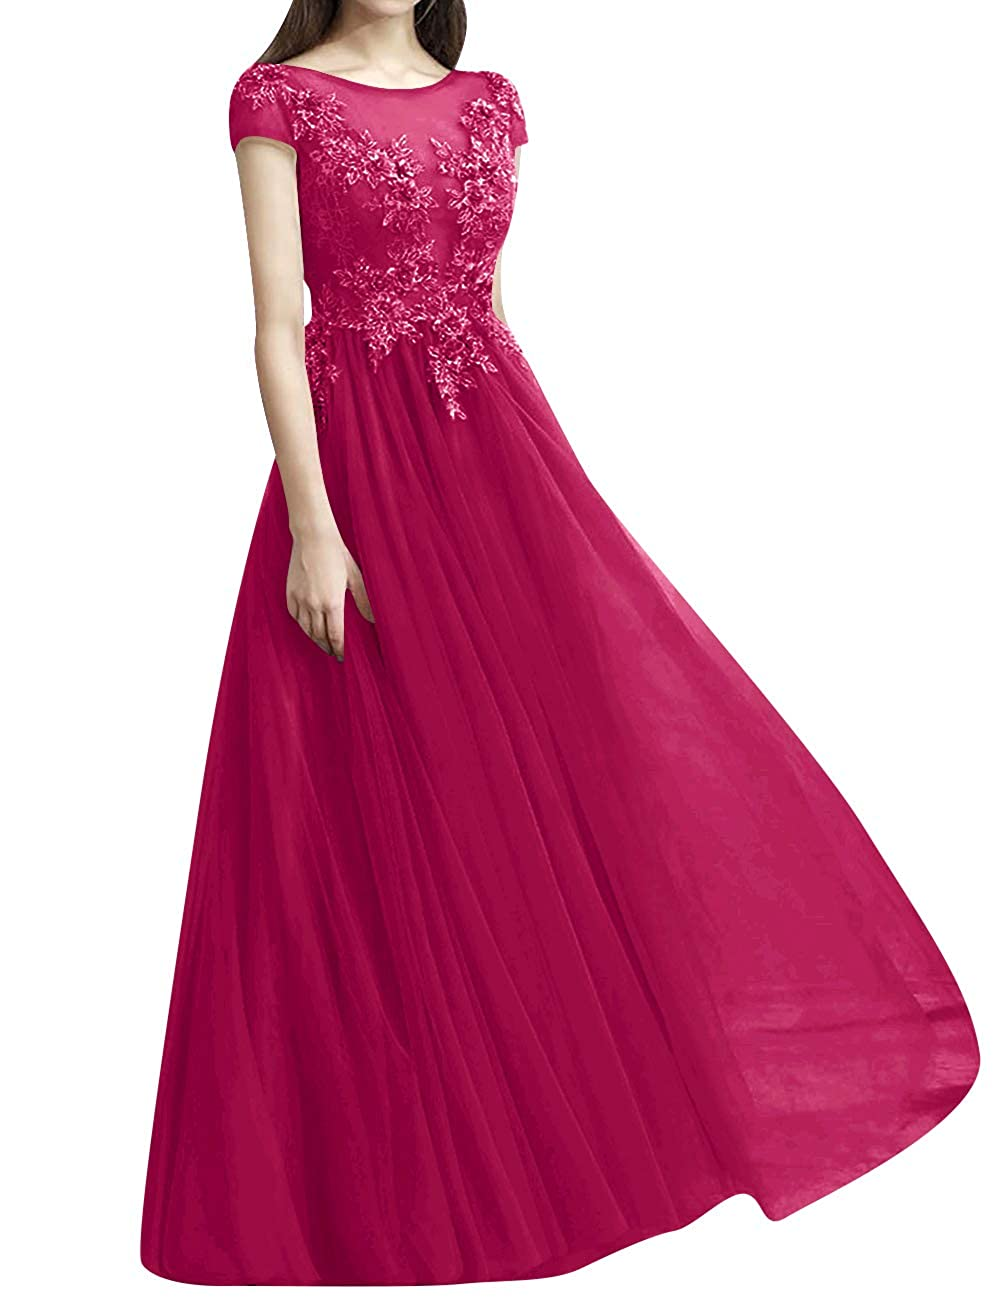 Hot Pink ASBridal Prom Dresses Long Evening Dress Short Sleeve Tulle Prom Evening Gowns Formal Party Dress